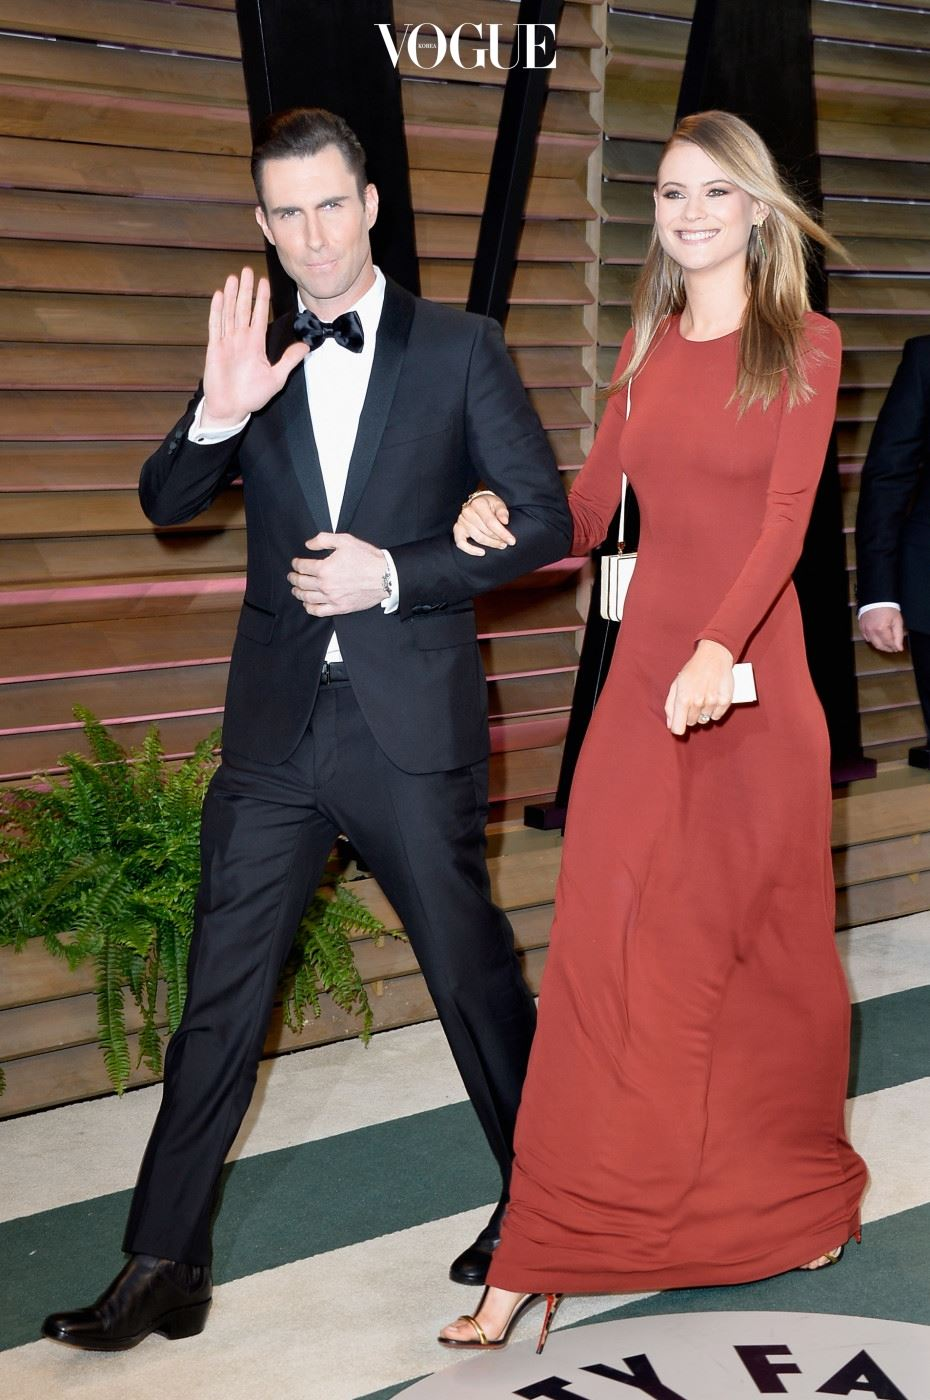 WEST HOLLYWOOD, CA - MARCH 02:  Musician Adam Levine (L) and model Behati Prinsloo attends the 2014 Vanity Fair Oscar Party hosted by Graydon Carter on March 2, 2014 in West Hollywood, California.  (Photo by Pascal Le Segretain/Getty Images)